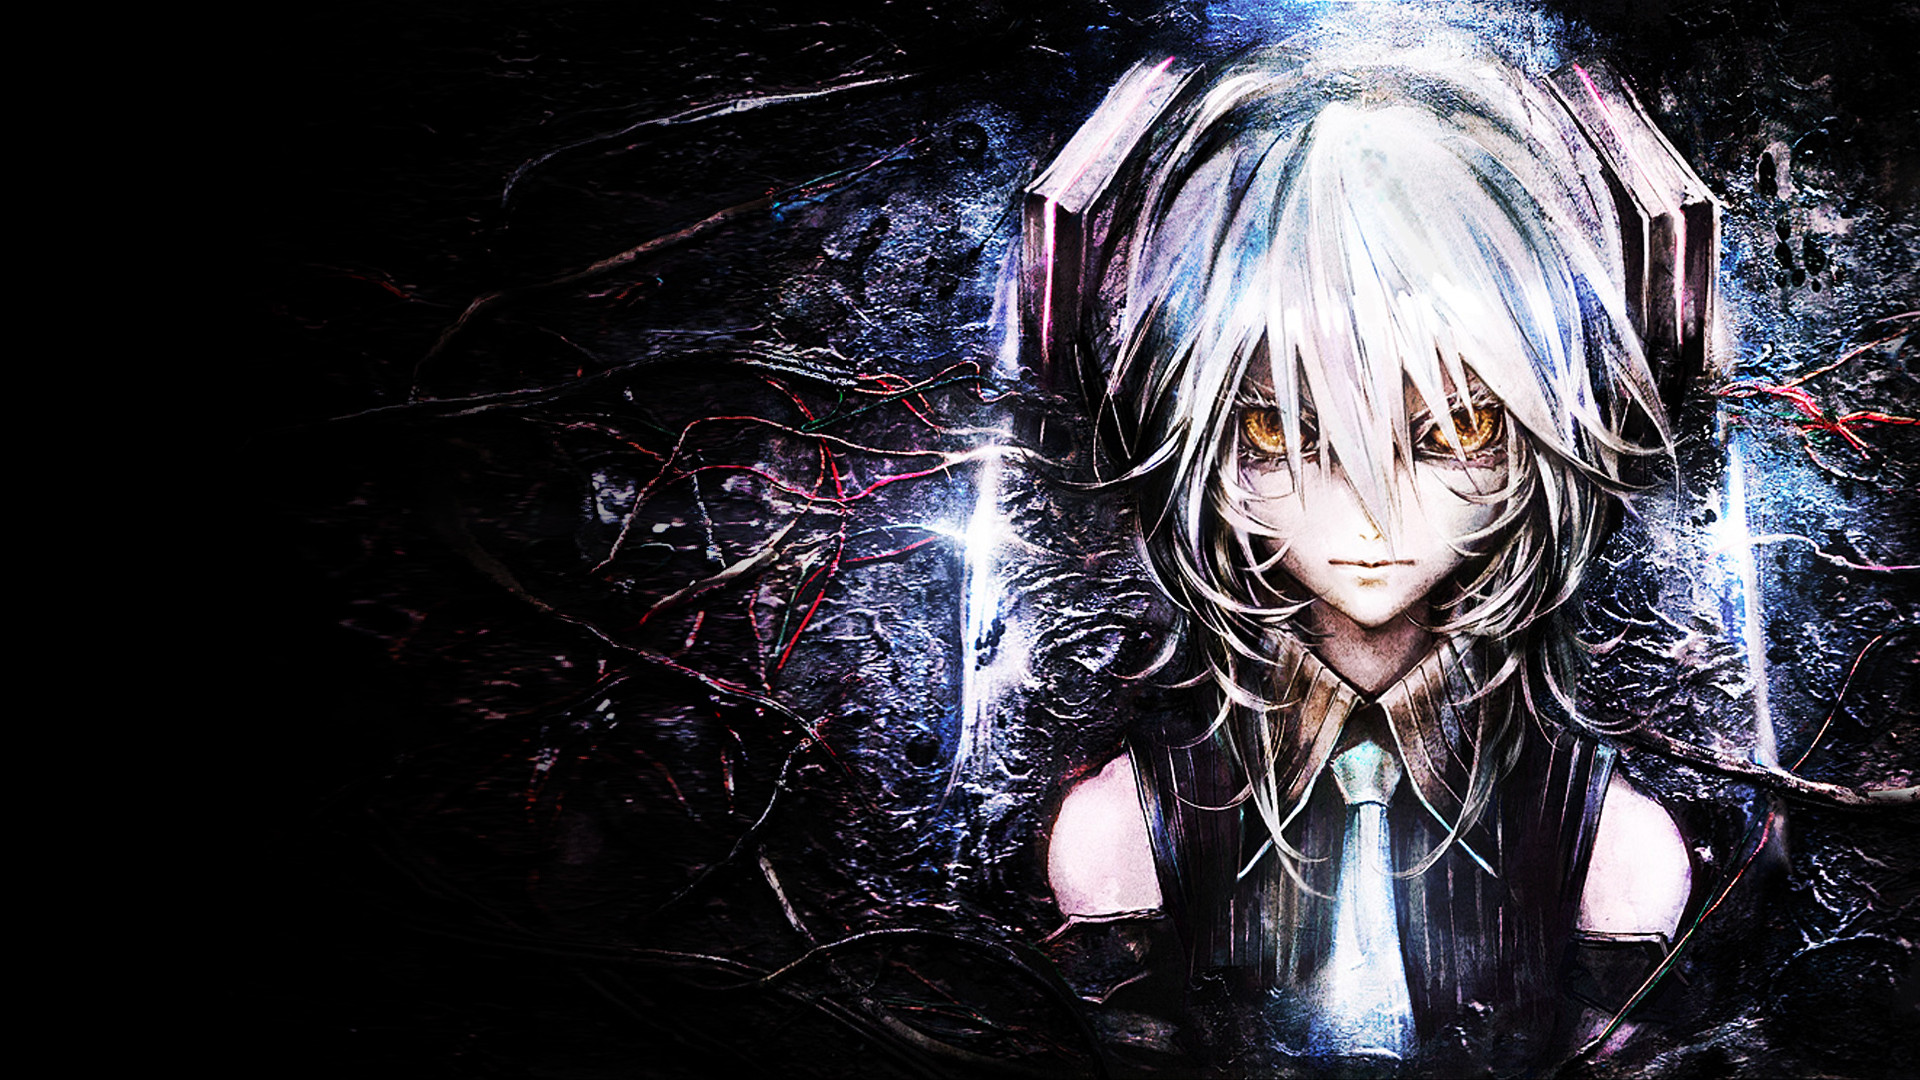 scary anime wallpaper (58+ images)